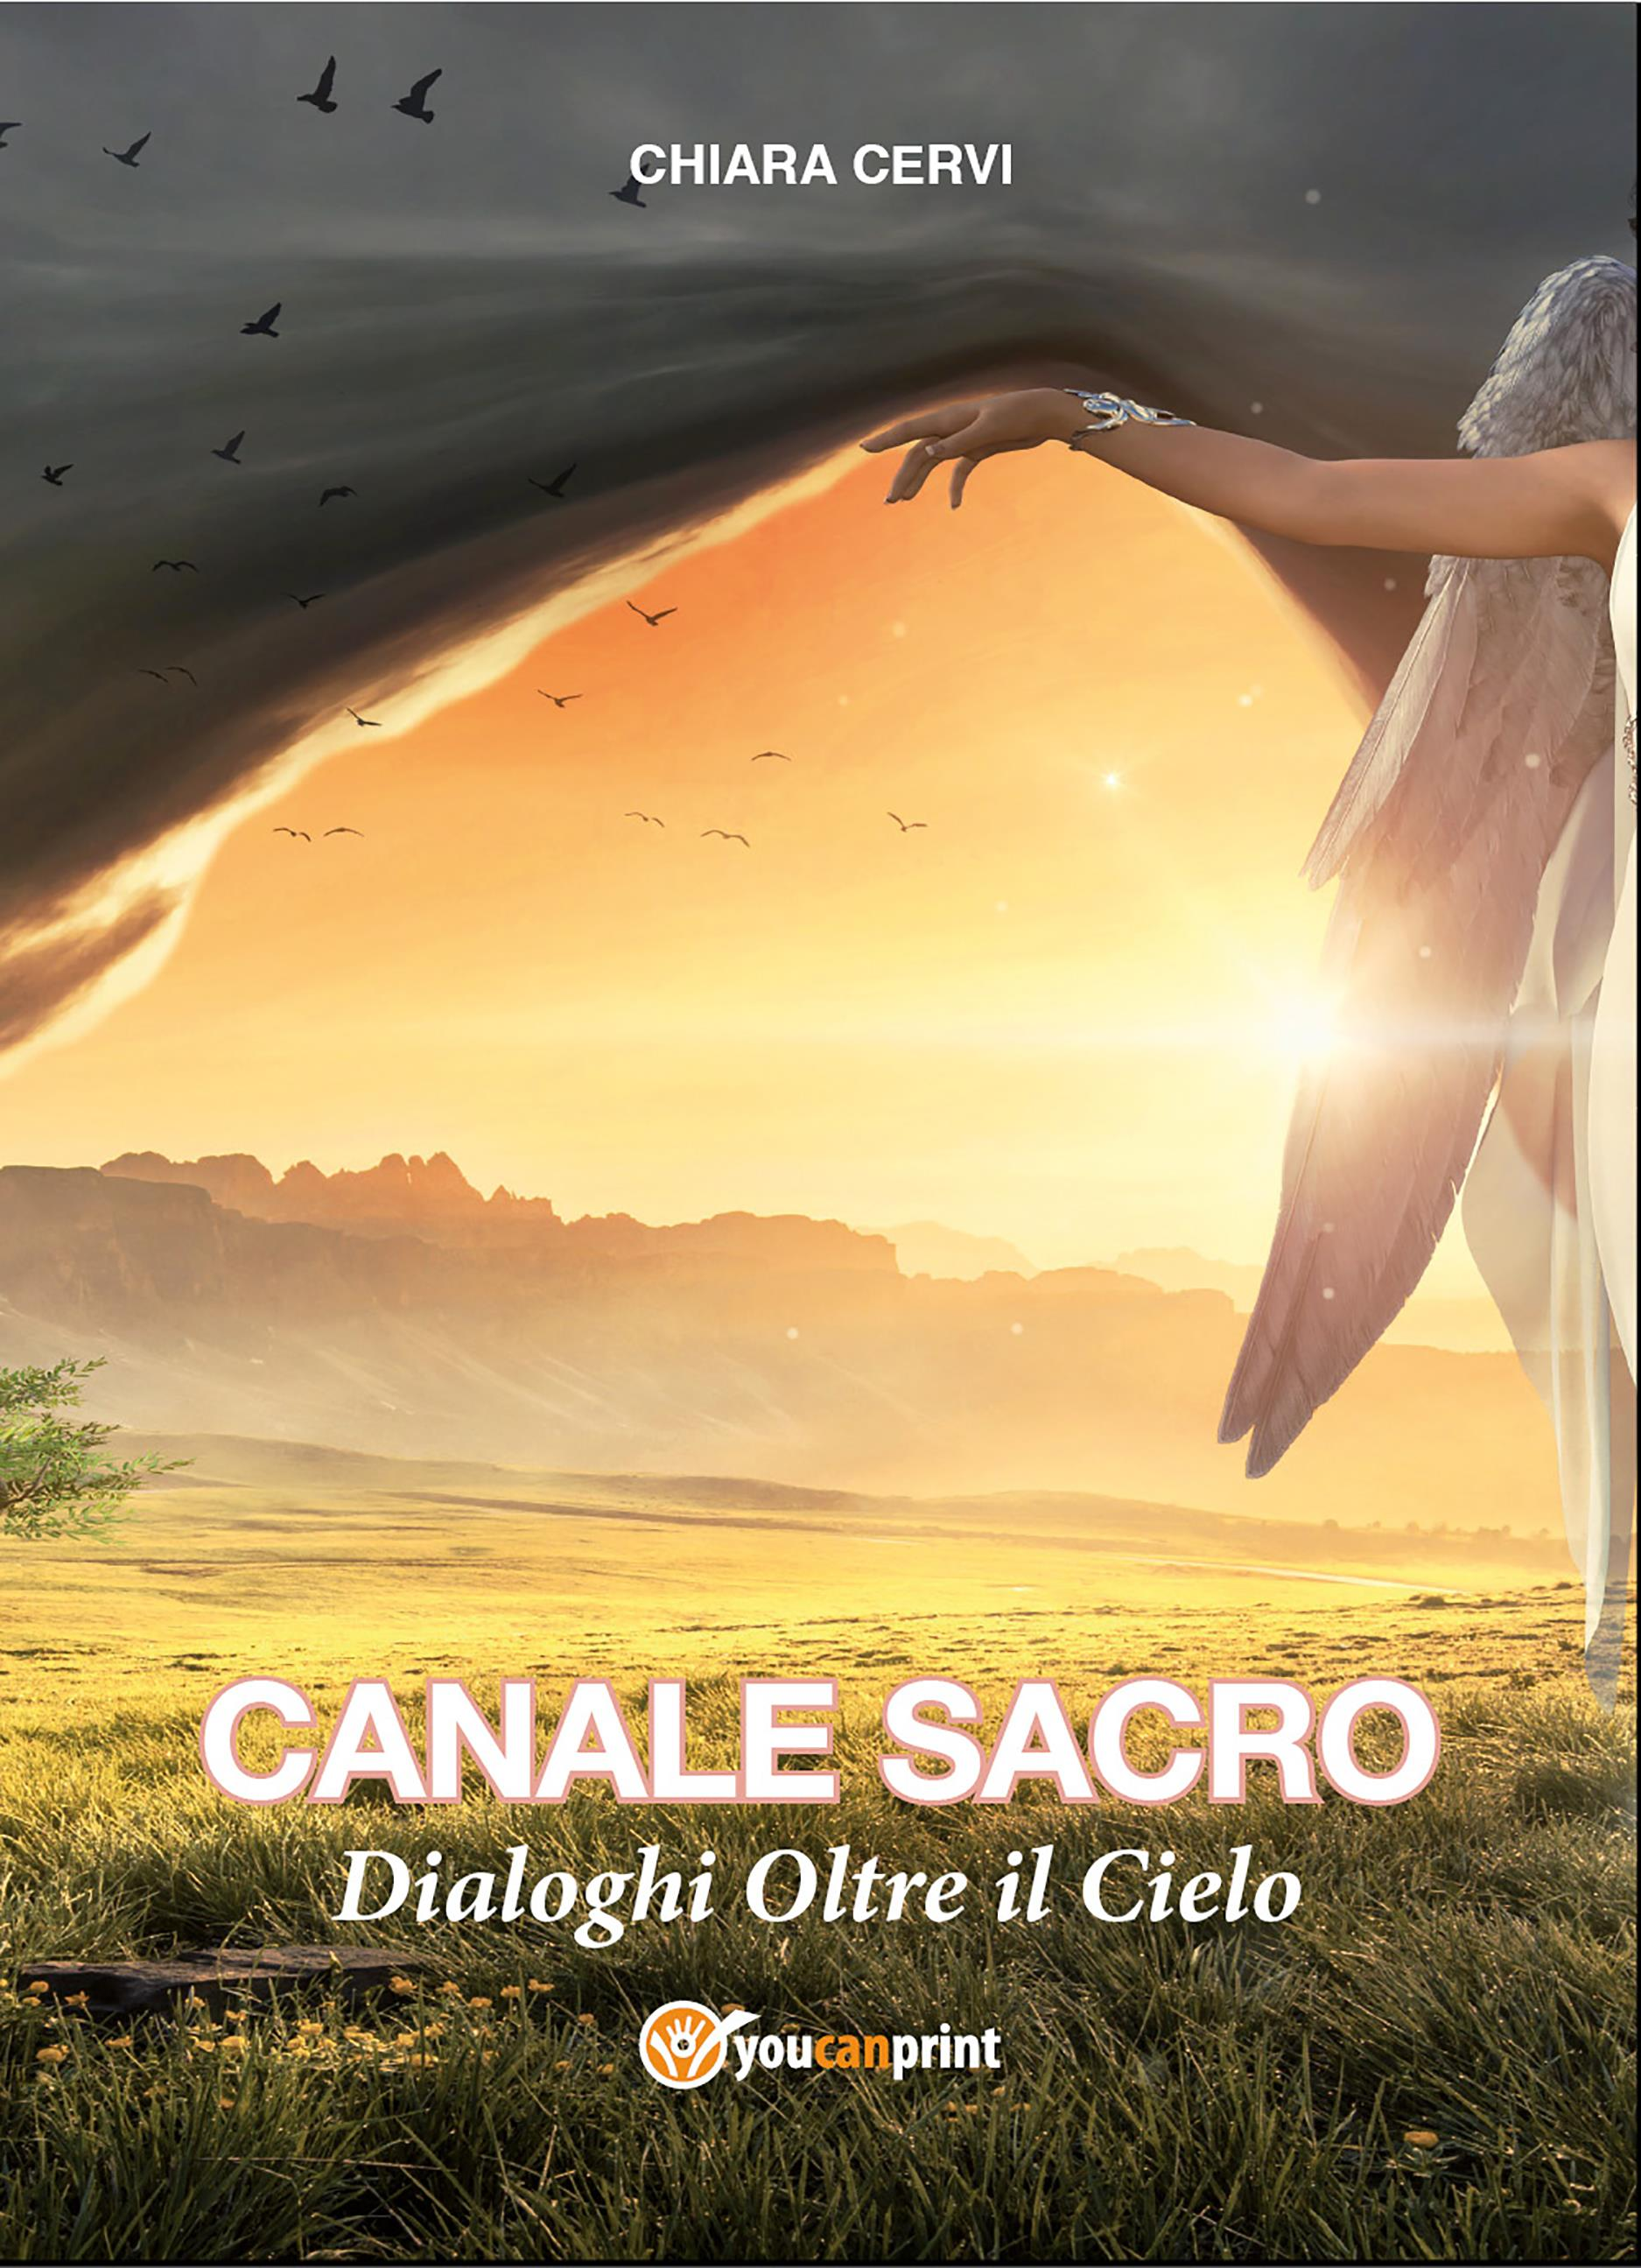 Canale sacro